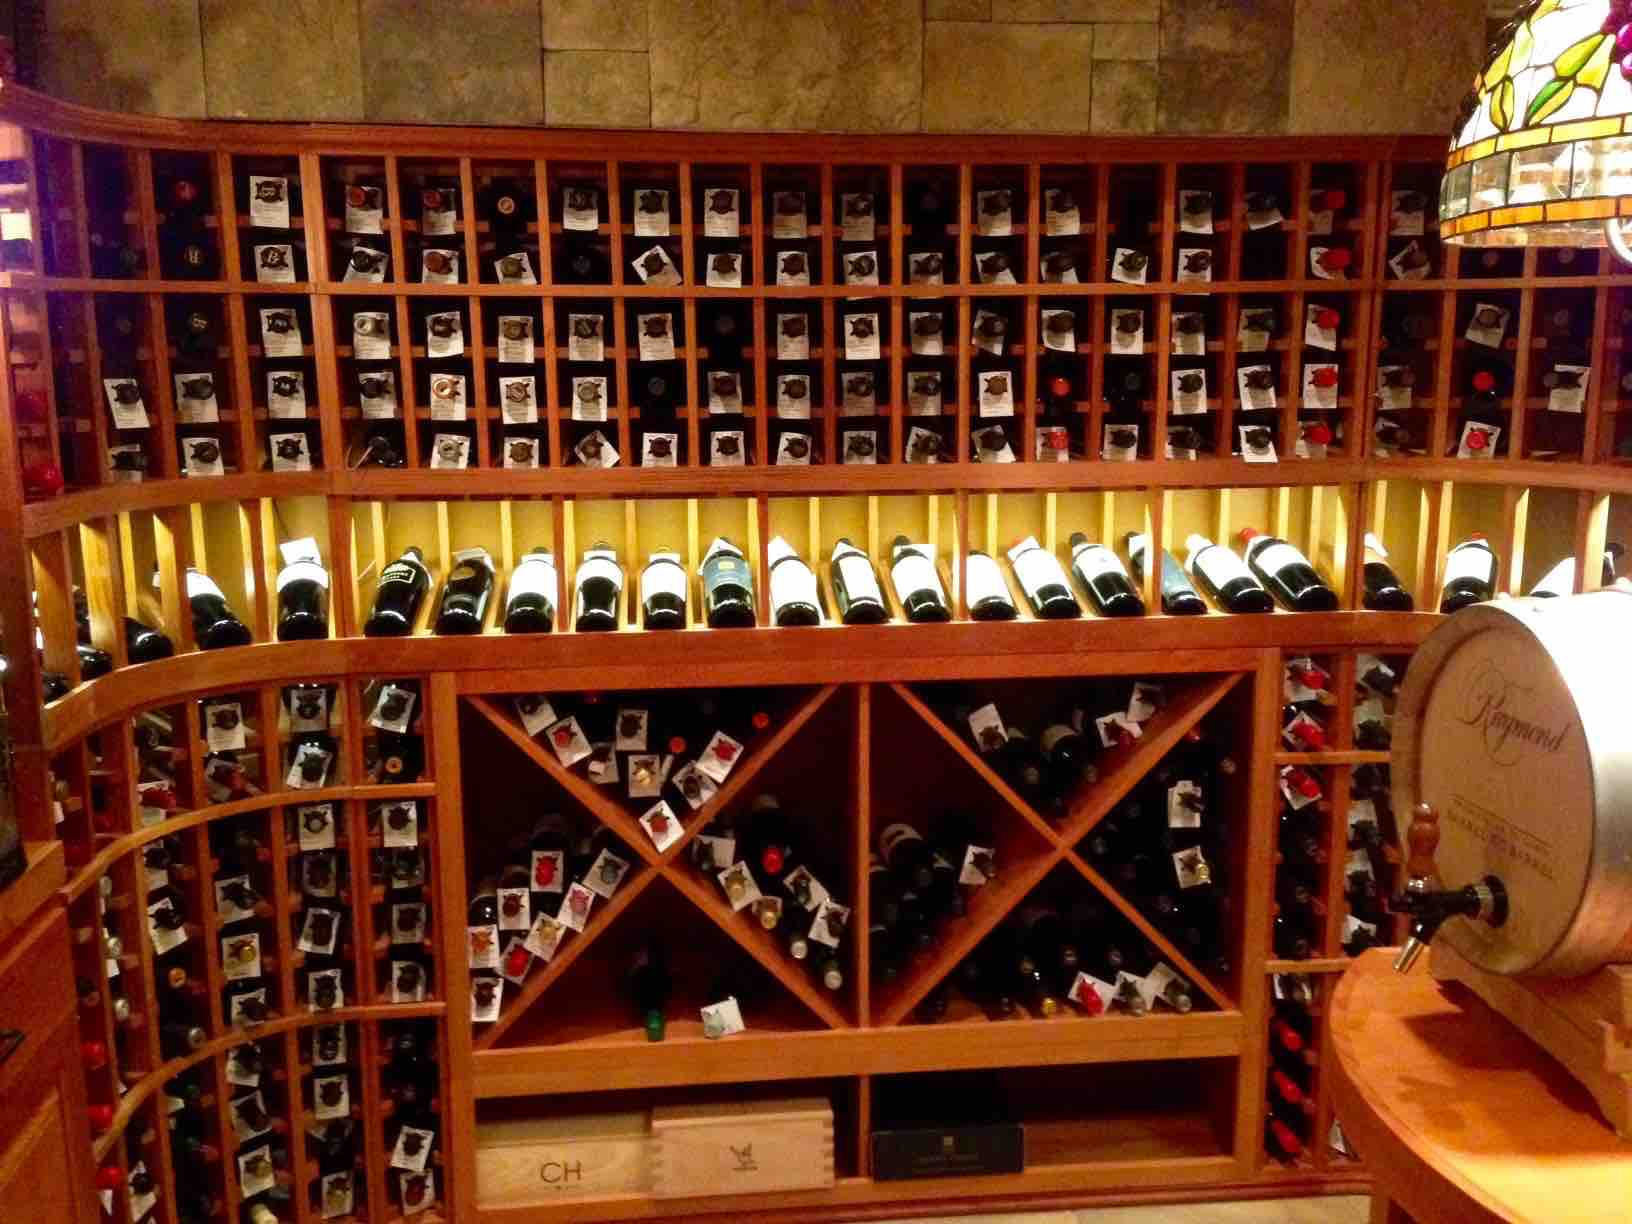 wine cellar lighting. Wine Room Lighting. Wooden Racks Chicago Home Project Lighting Cellar